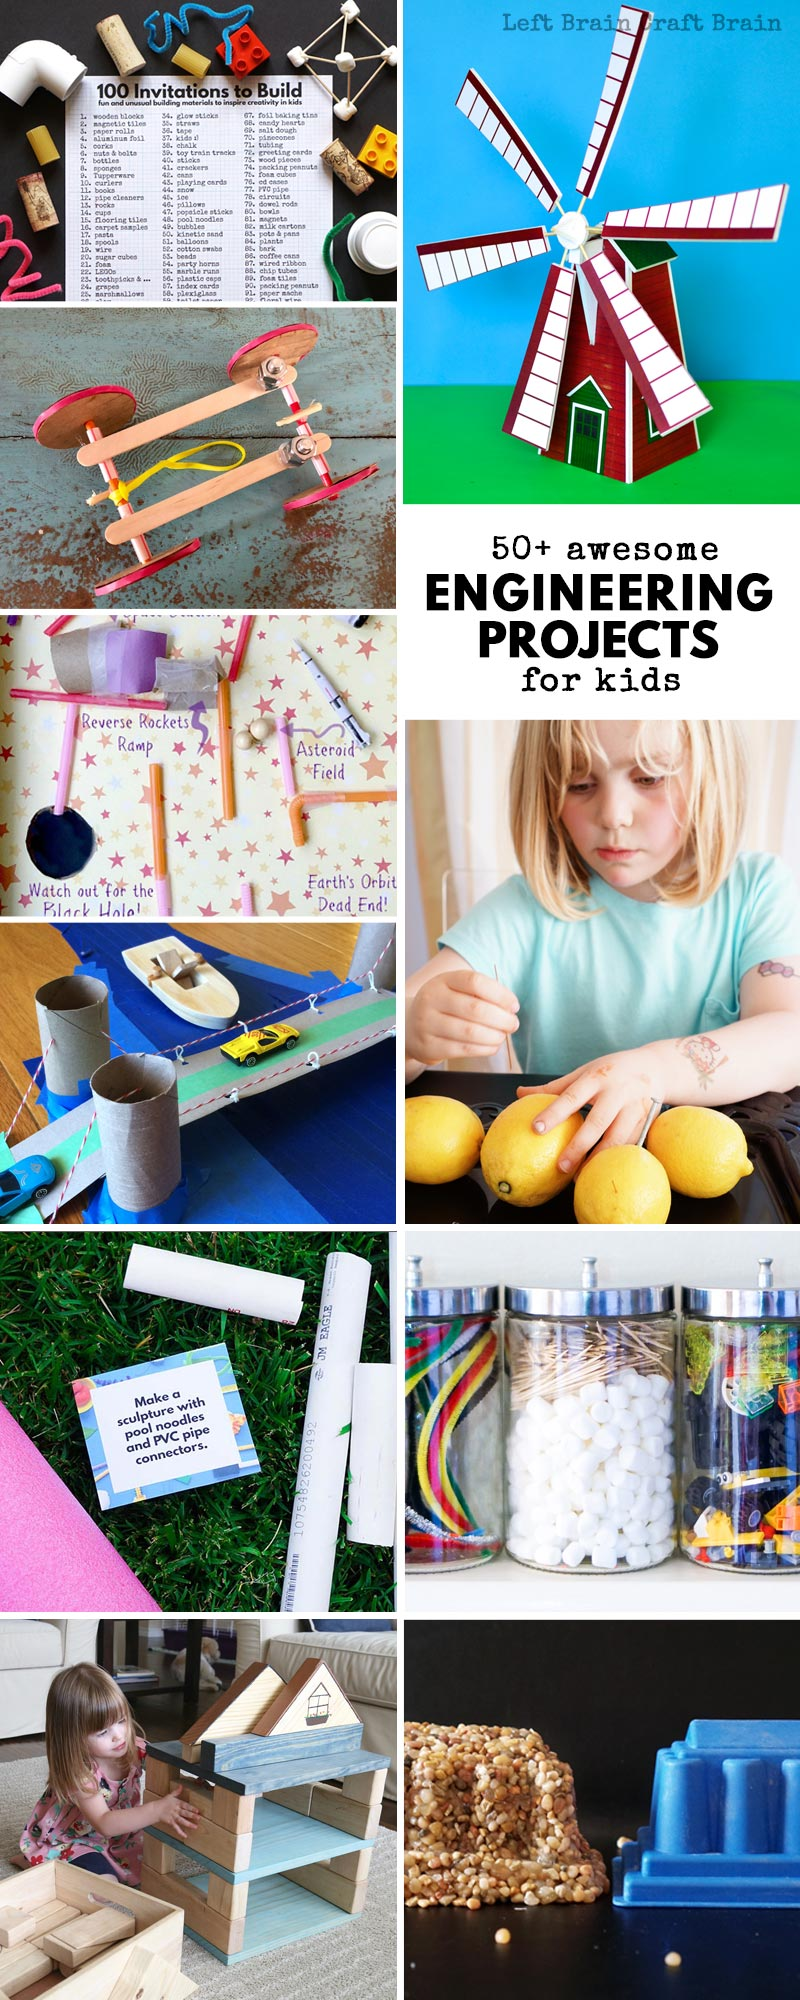 You're gonna love these awesome engineering projects for kids that will get them building, creating, and having fun. You'll find building activities, STEM challenges, STEAM challenges, electrical engineering projects, holiday engineering projects, and more in this massive list of more than 50 ideas.